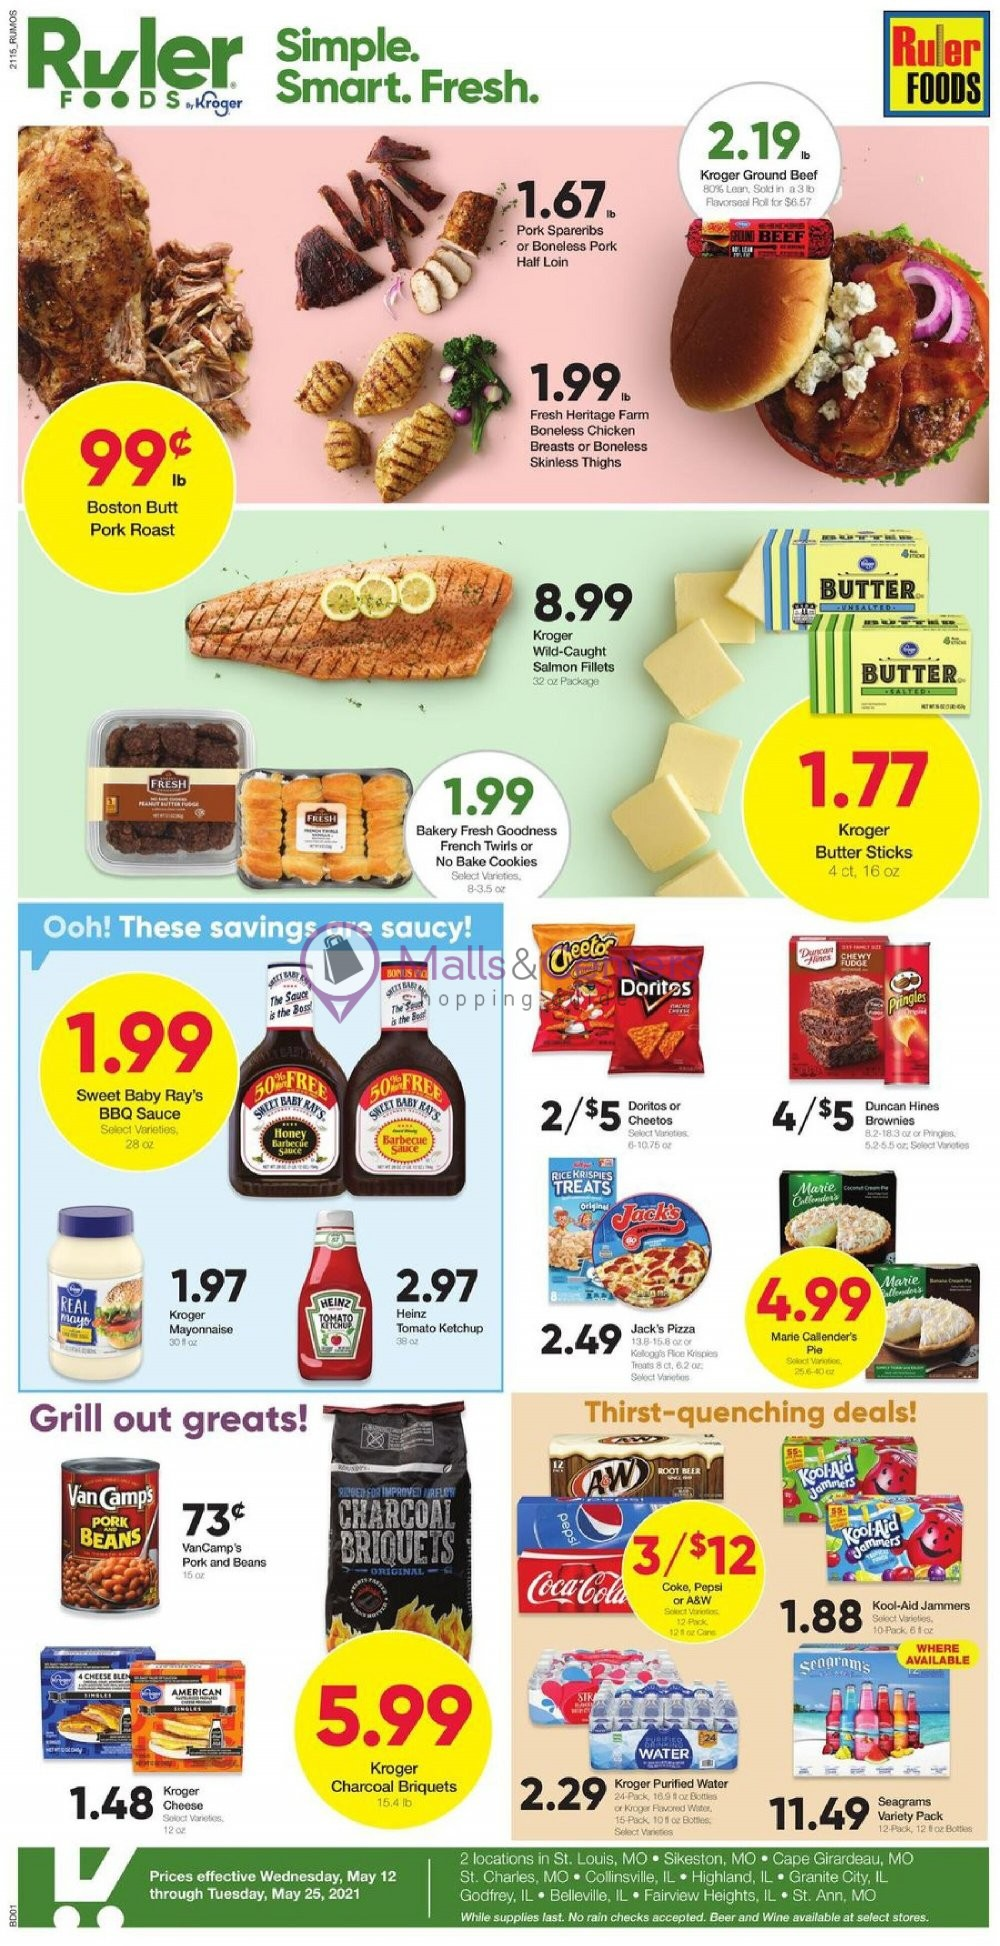 weekly ads Ruler Foods - page 1 - mallscenters.com